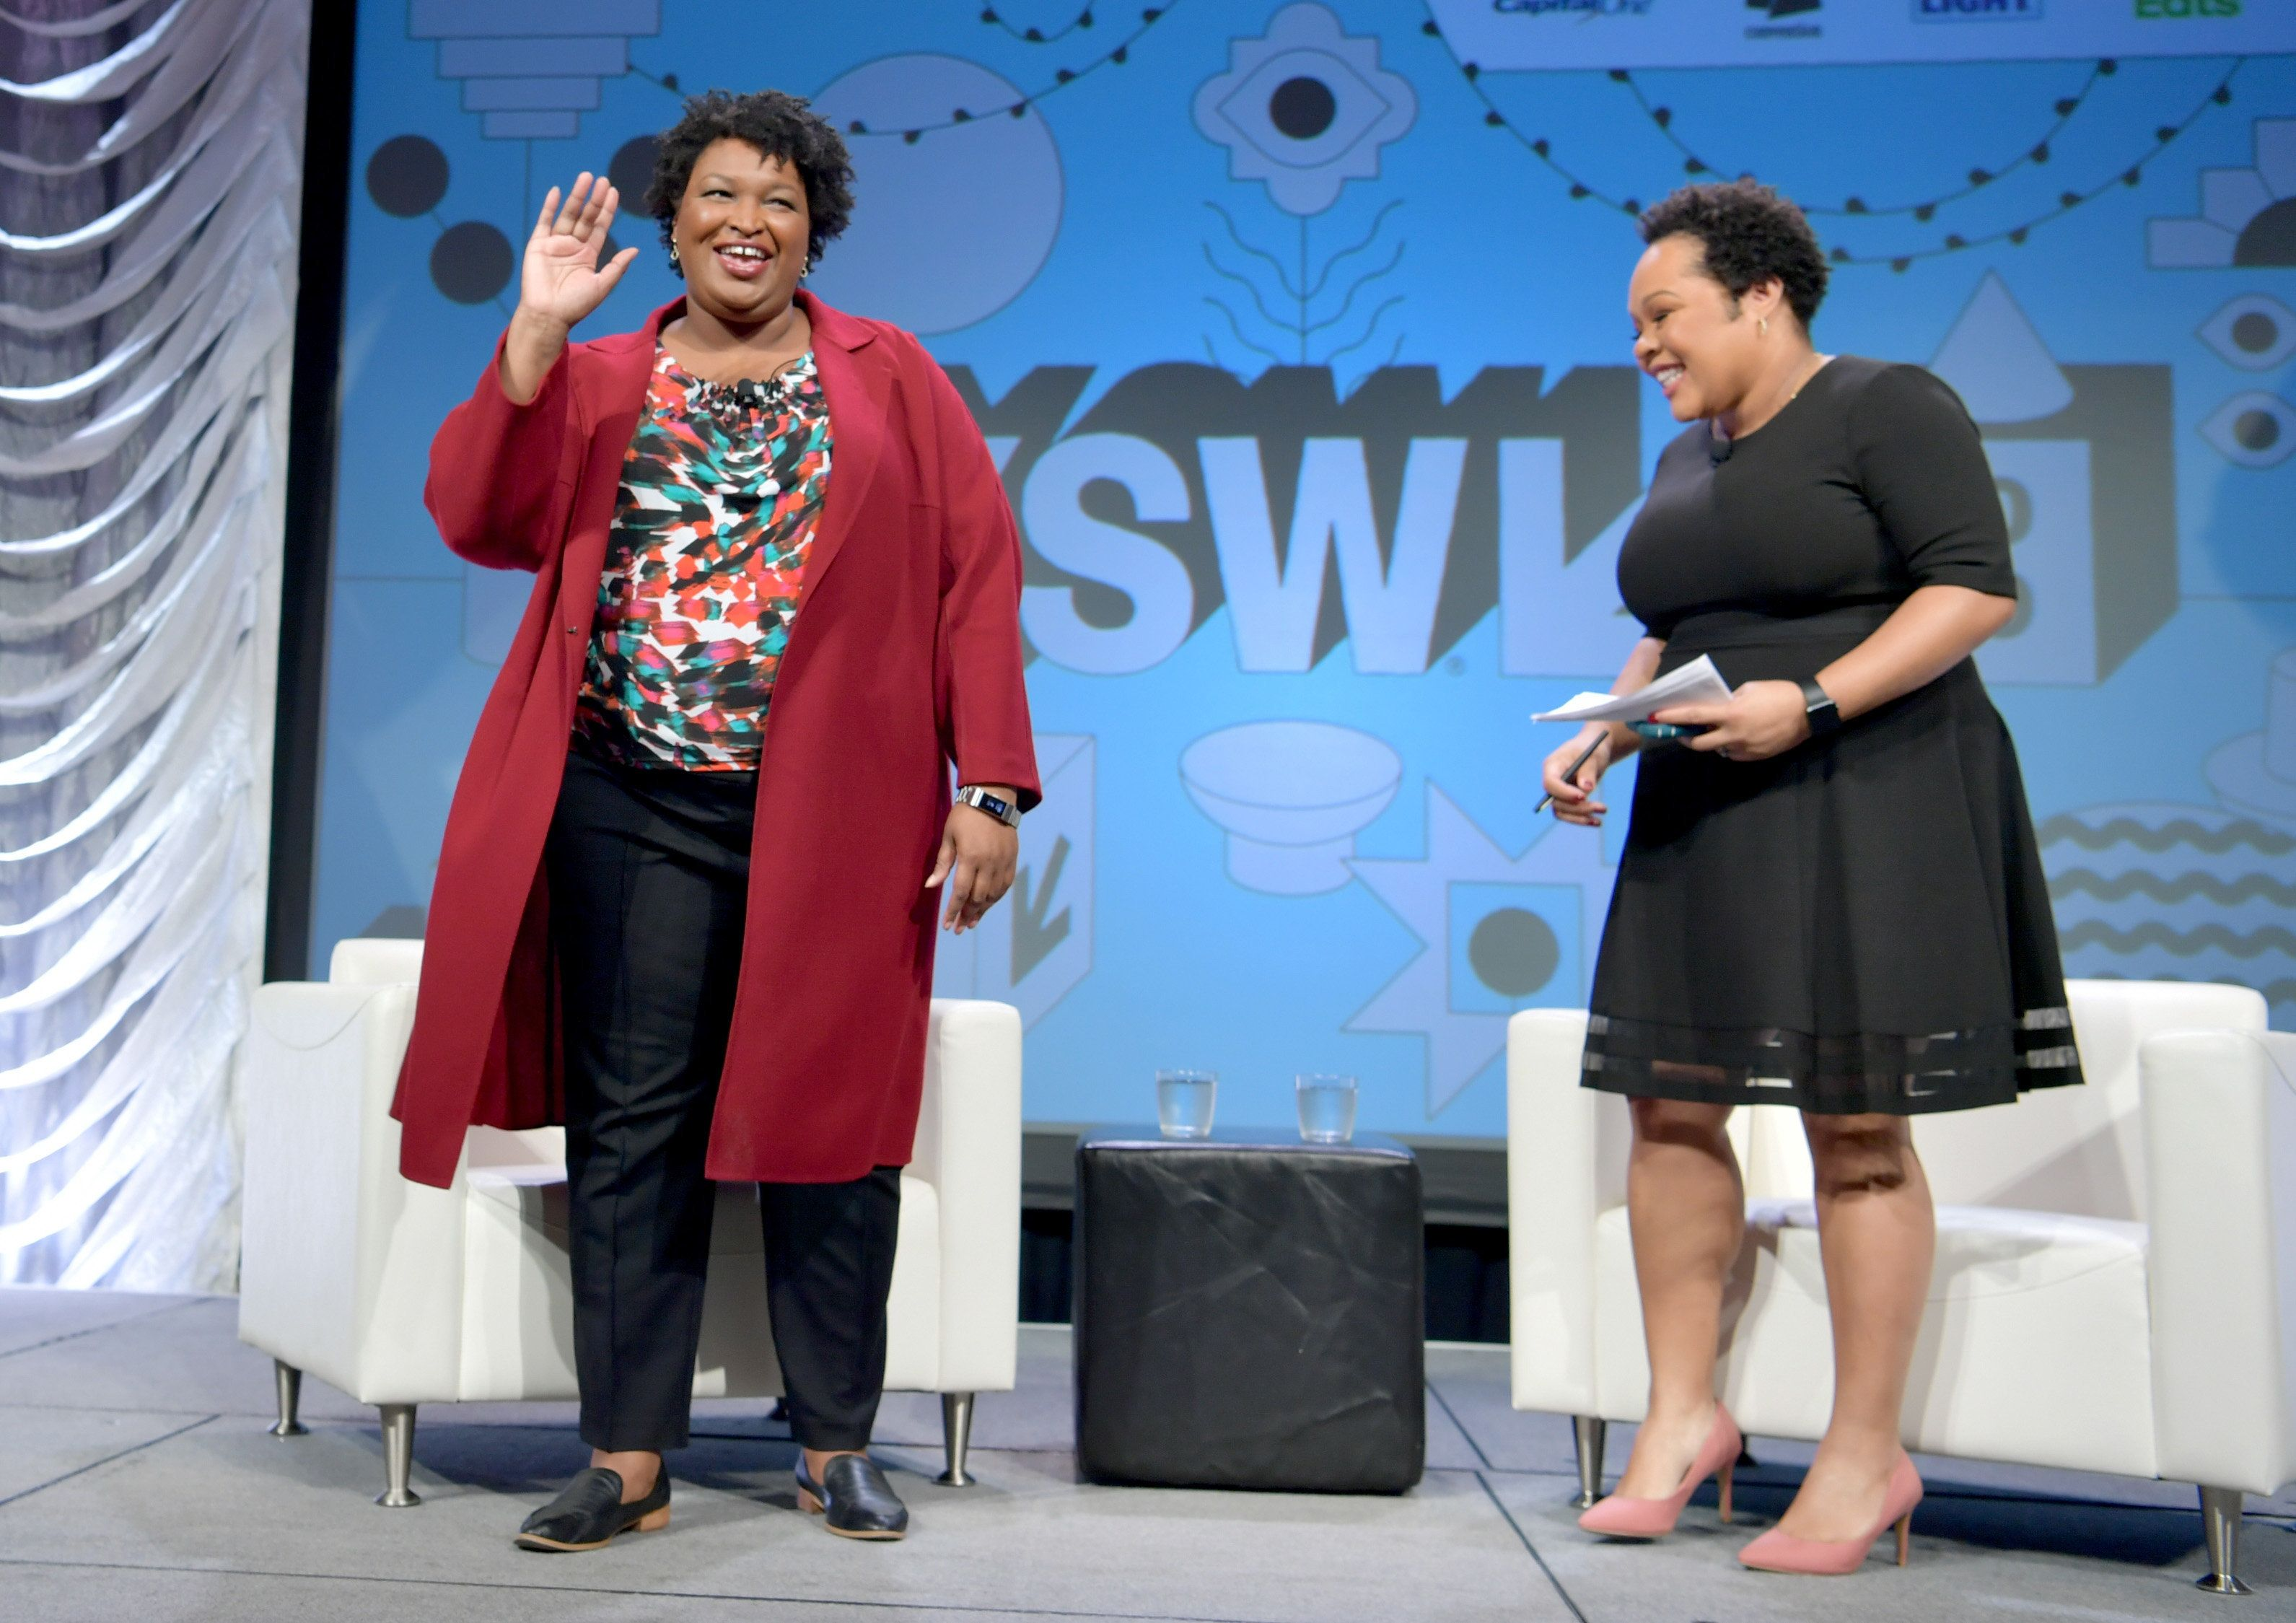 AUSTIN, TX - MARCH 11:  Stacey Abrams and Yamiche Alcindor speak onstage at Featured Session: Lead from the Outside: How to Make Real Change during the 2019 SXSW Conference and Festivals at Hilton Austin on March 11, 2019 in Austin, Texas.  (Photo by Danny Matson/Getty Images for SXSW)